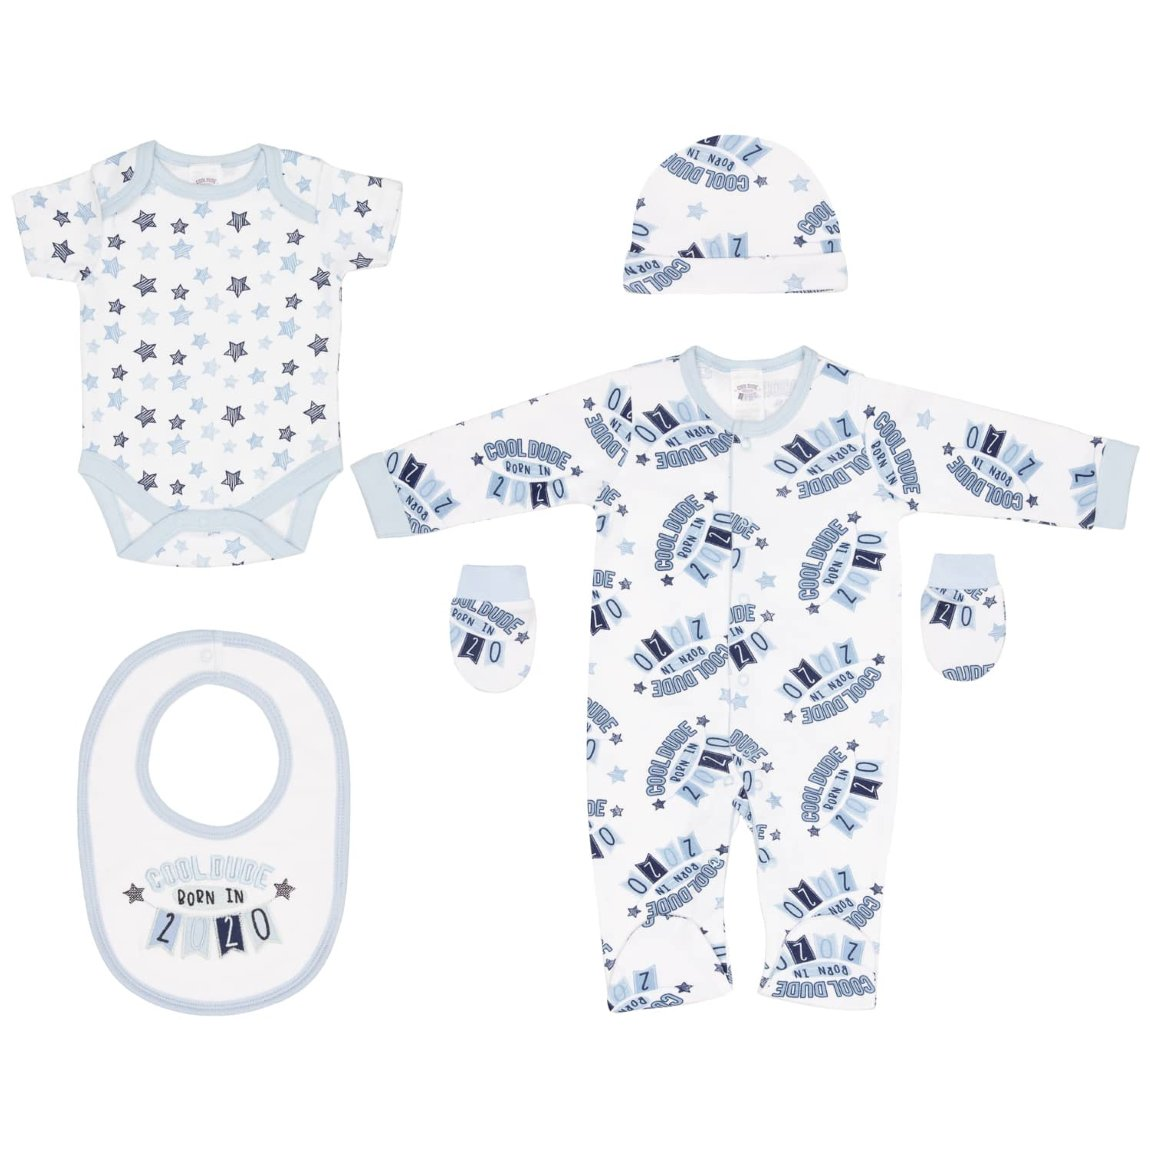 Born in 2020 Baby 5pc Set - Cool Dude